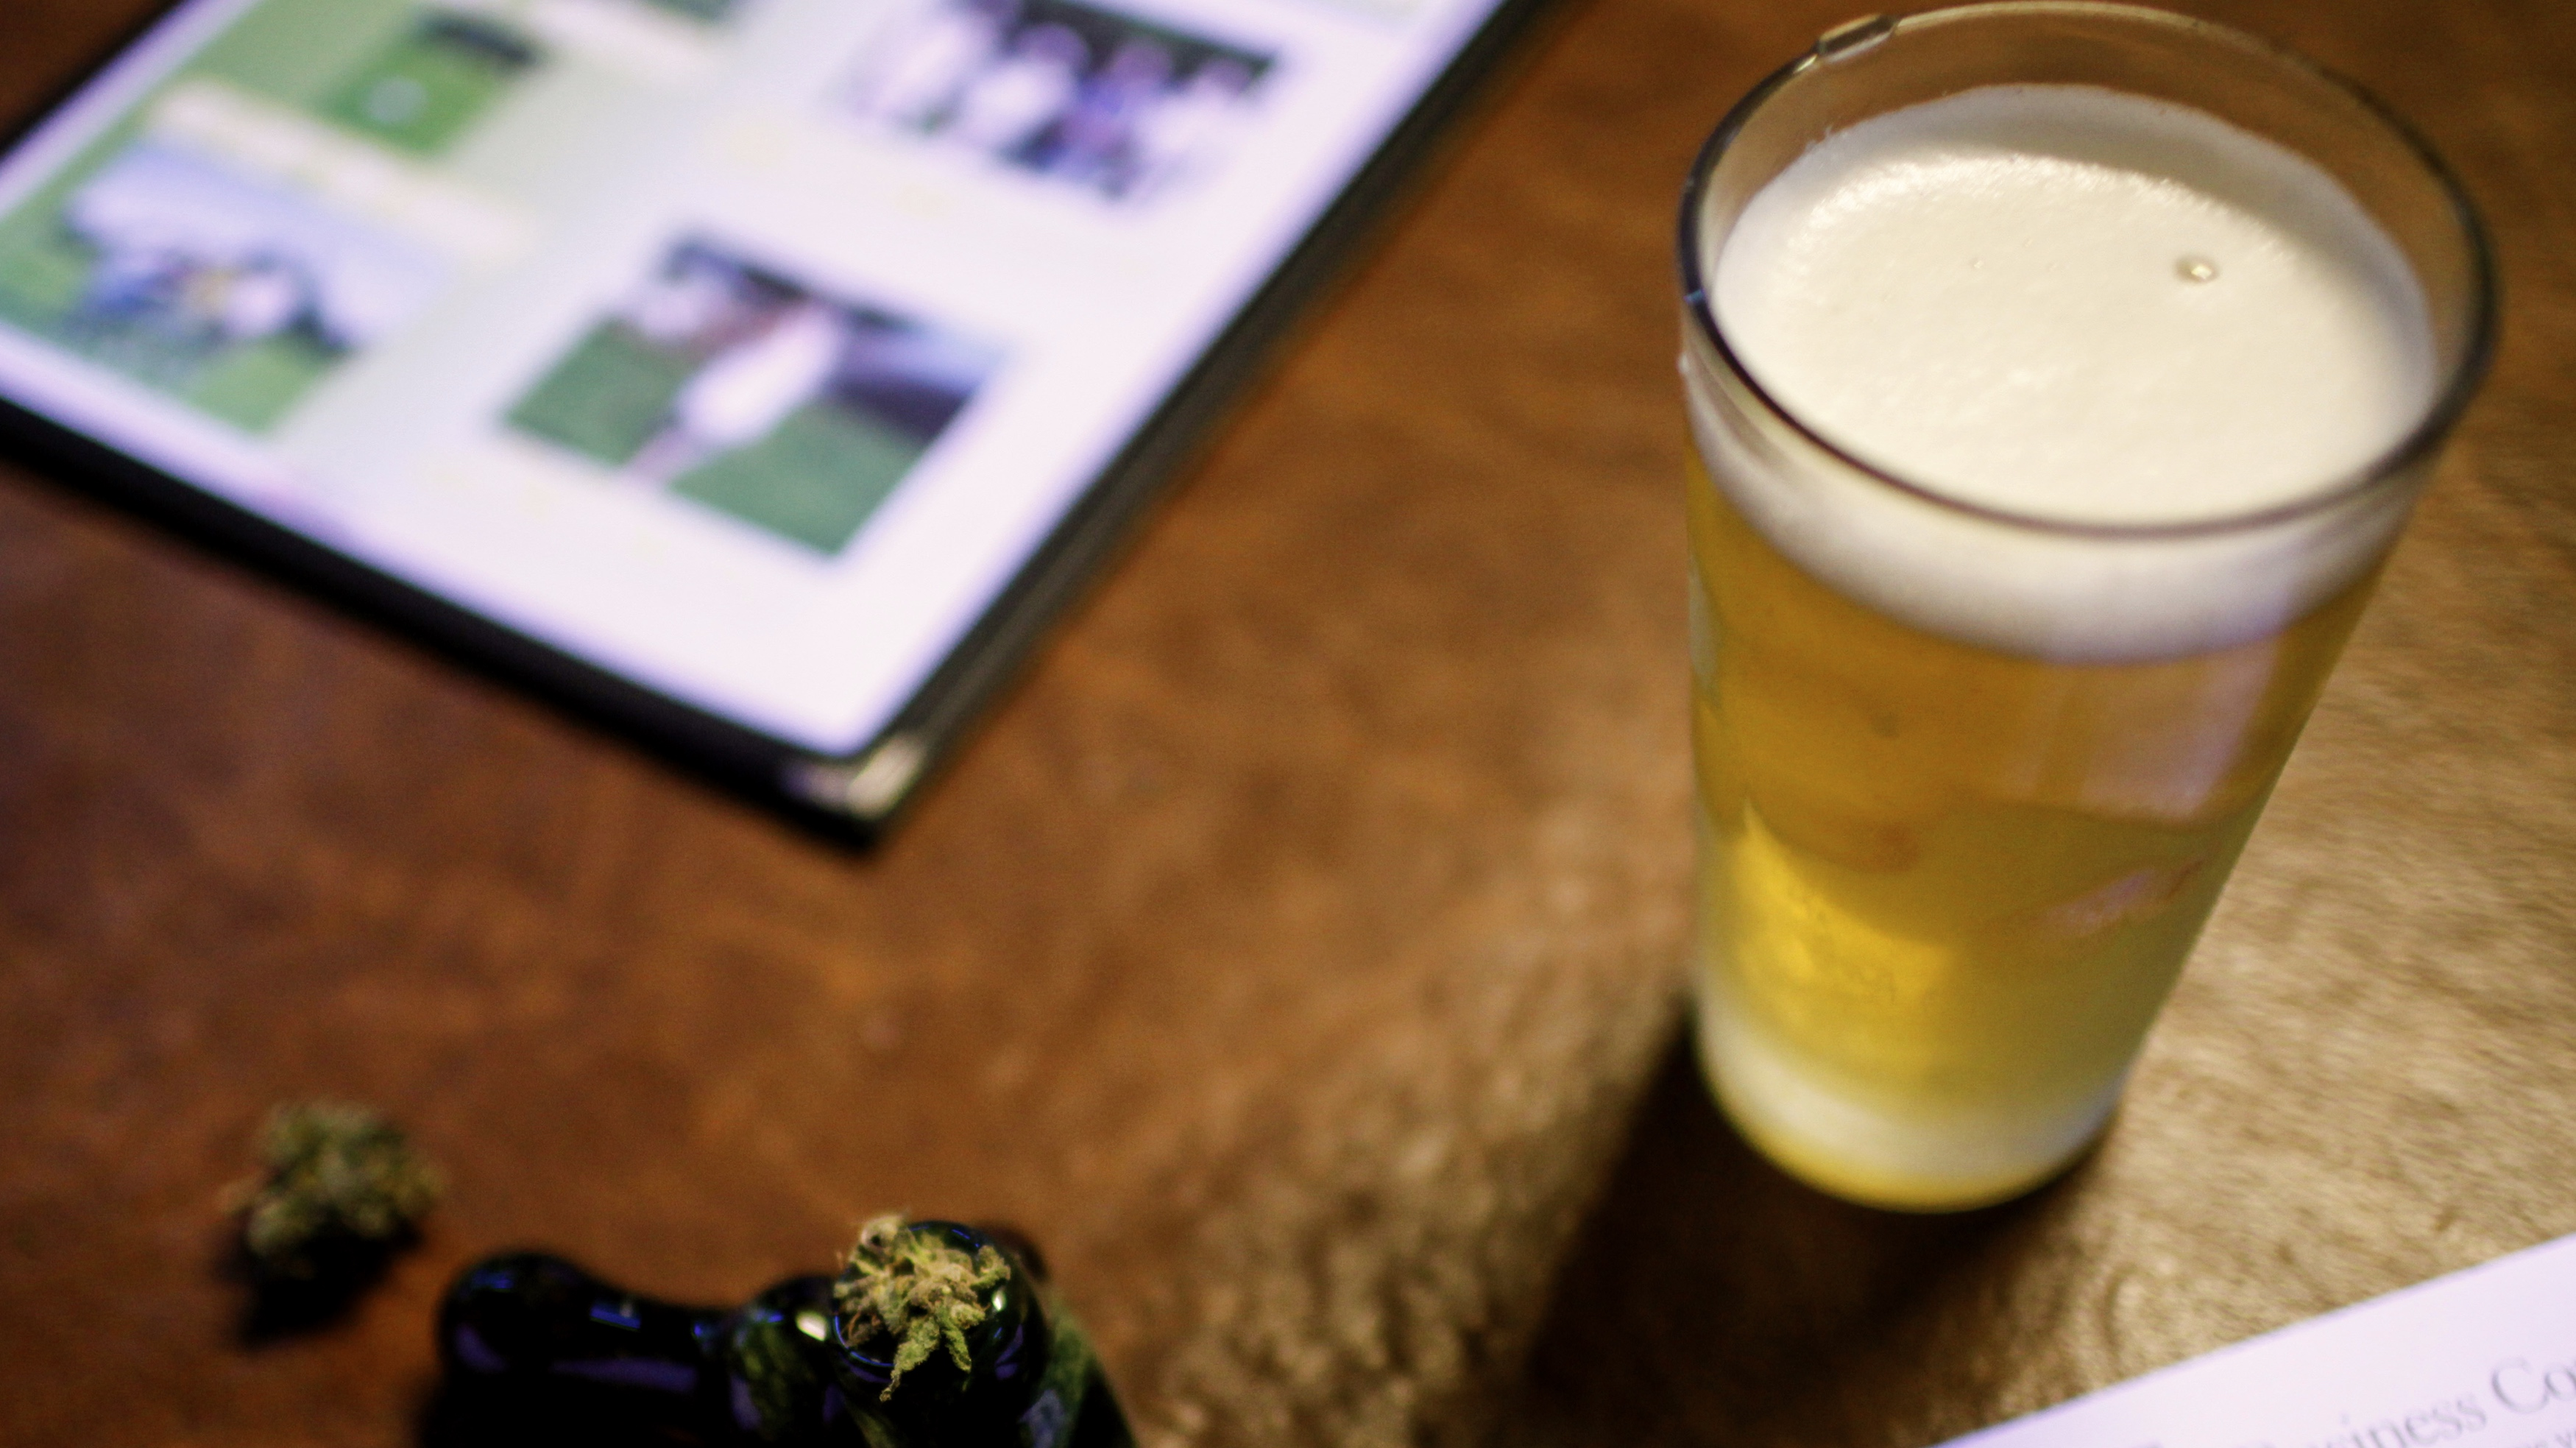 A quarter of US beer drinkers have switched to marijuana, or would